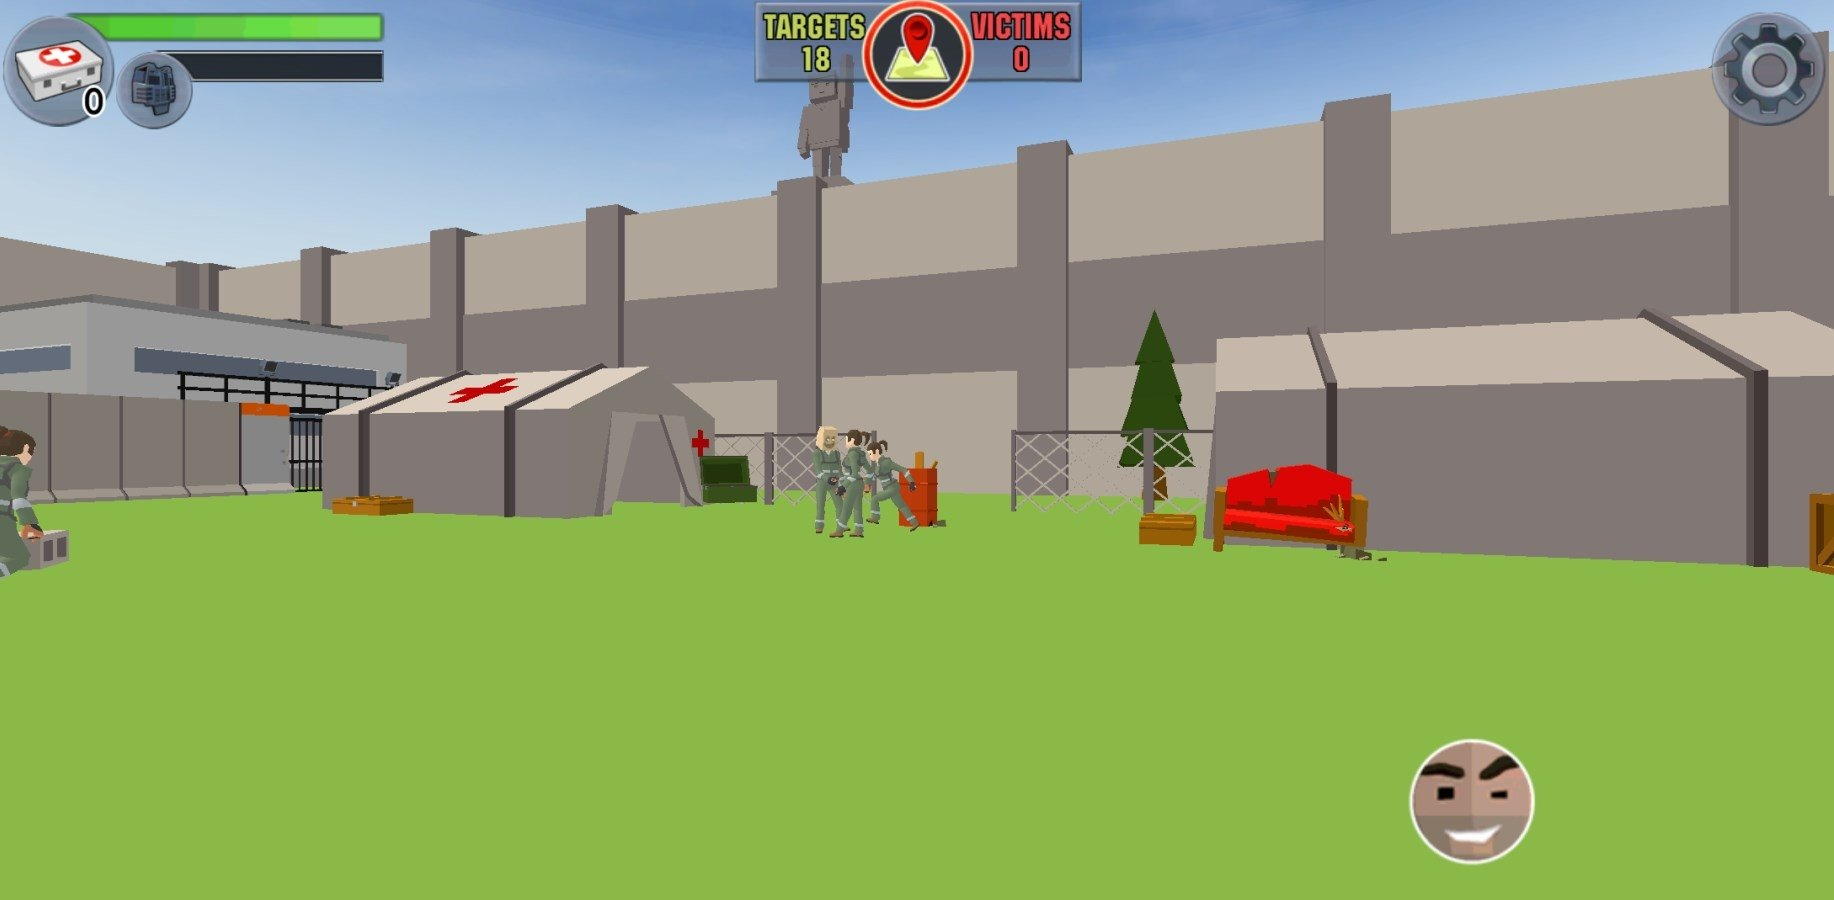 Battle Royale: FPS Shooter 1 10 04 - Download for Android APK Free